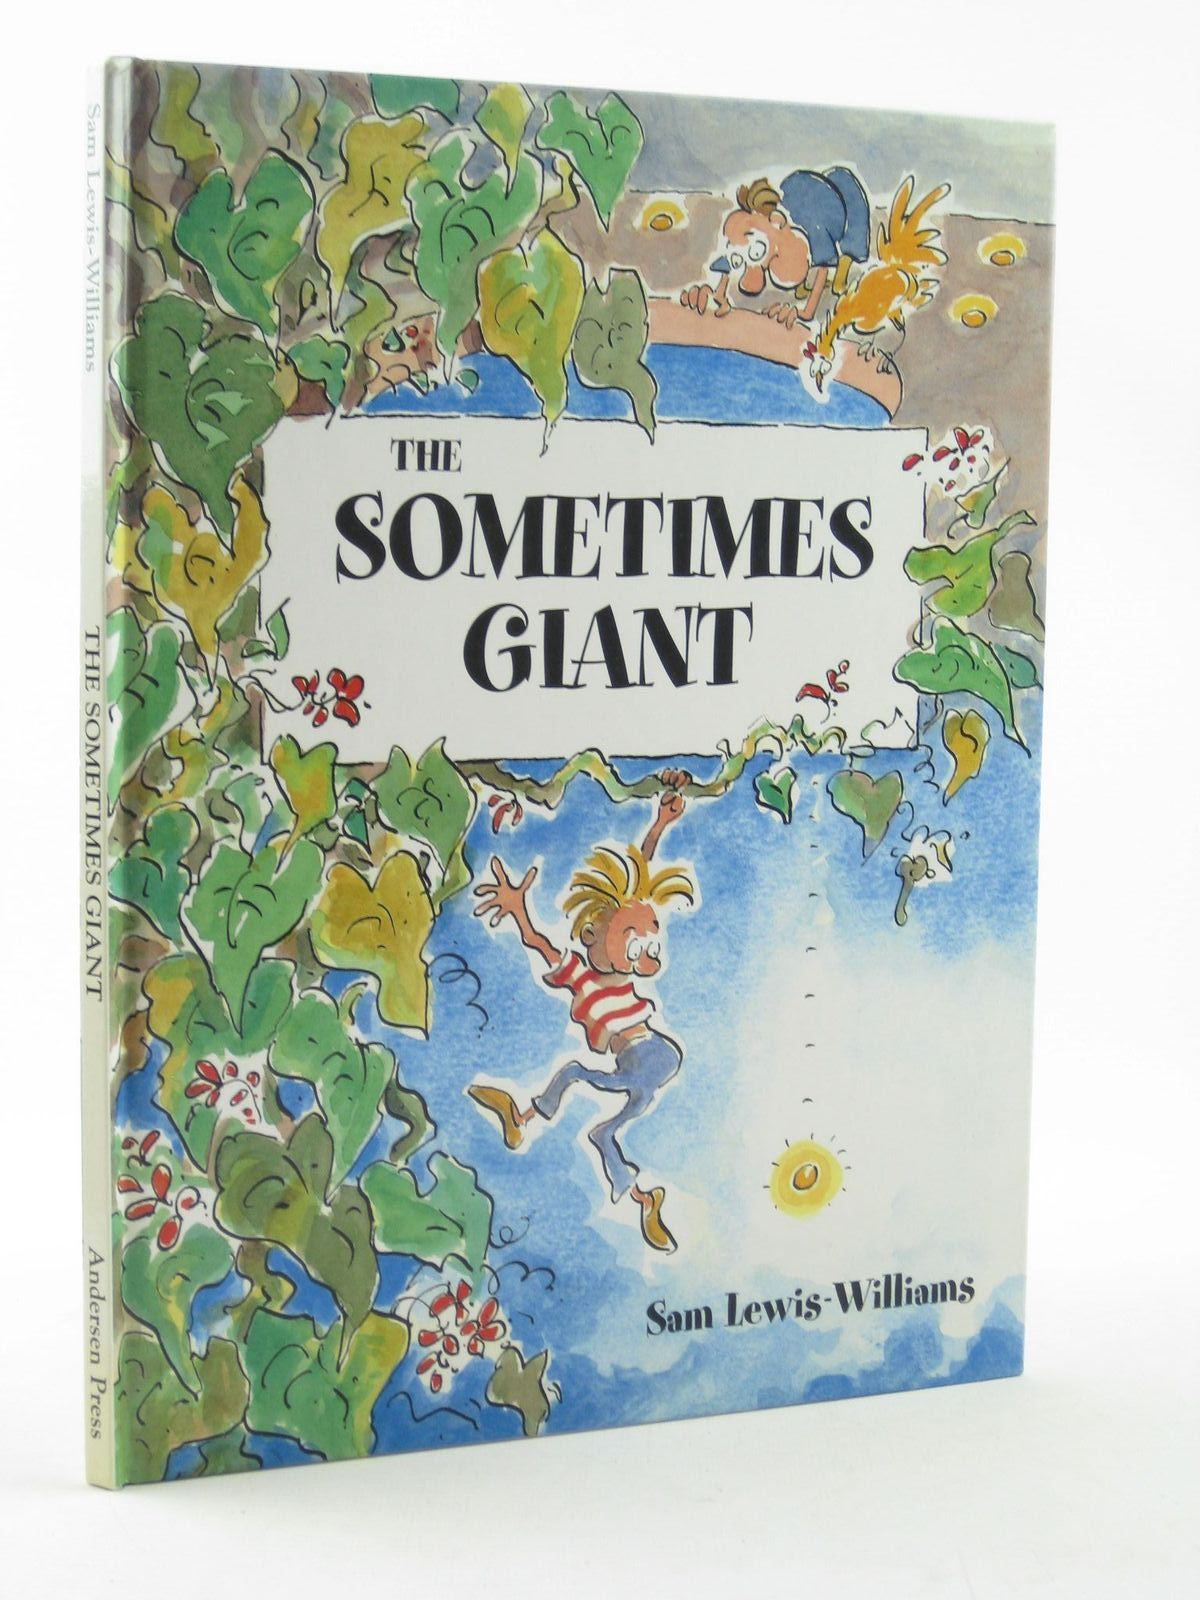 Photo of THE SOMETIMES GIANT written by Lewis-Williams, Sam illustrated by Lewis-Williams, Sam published by Andersen Press Ltd. (STOCK CODE: 1311540)  for sale by Stella & Rose's Books